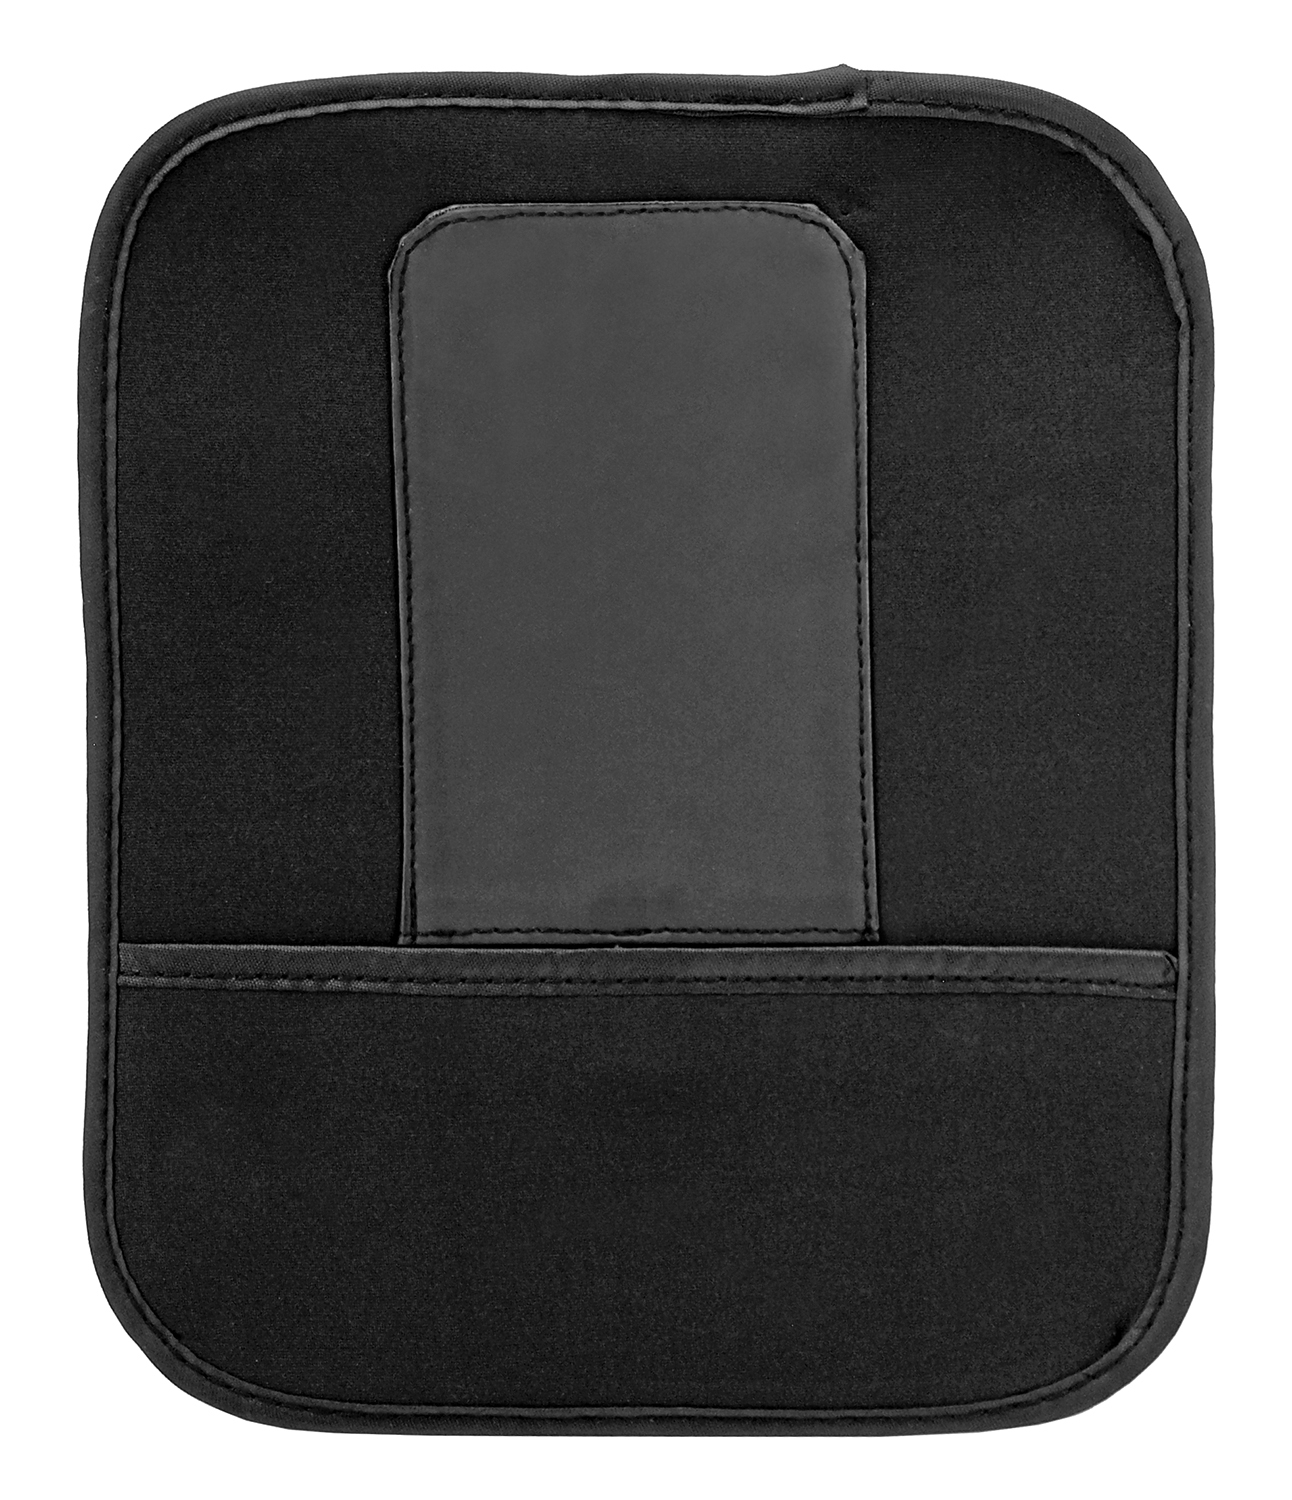 Neoprene Universal Tablet Cover - Assorted Colors